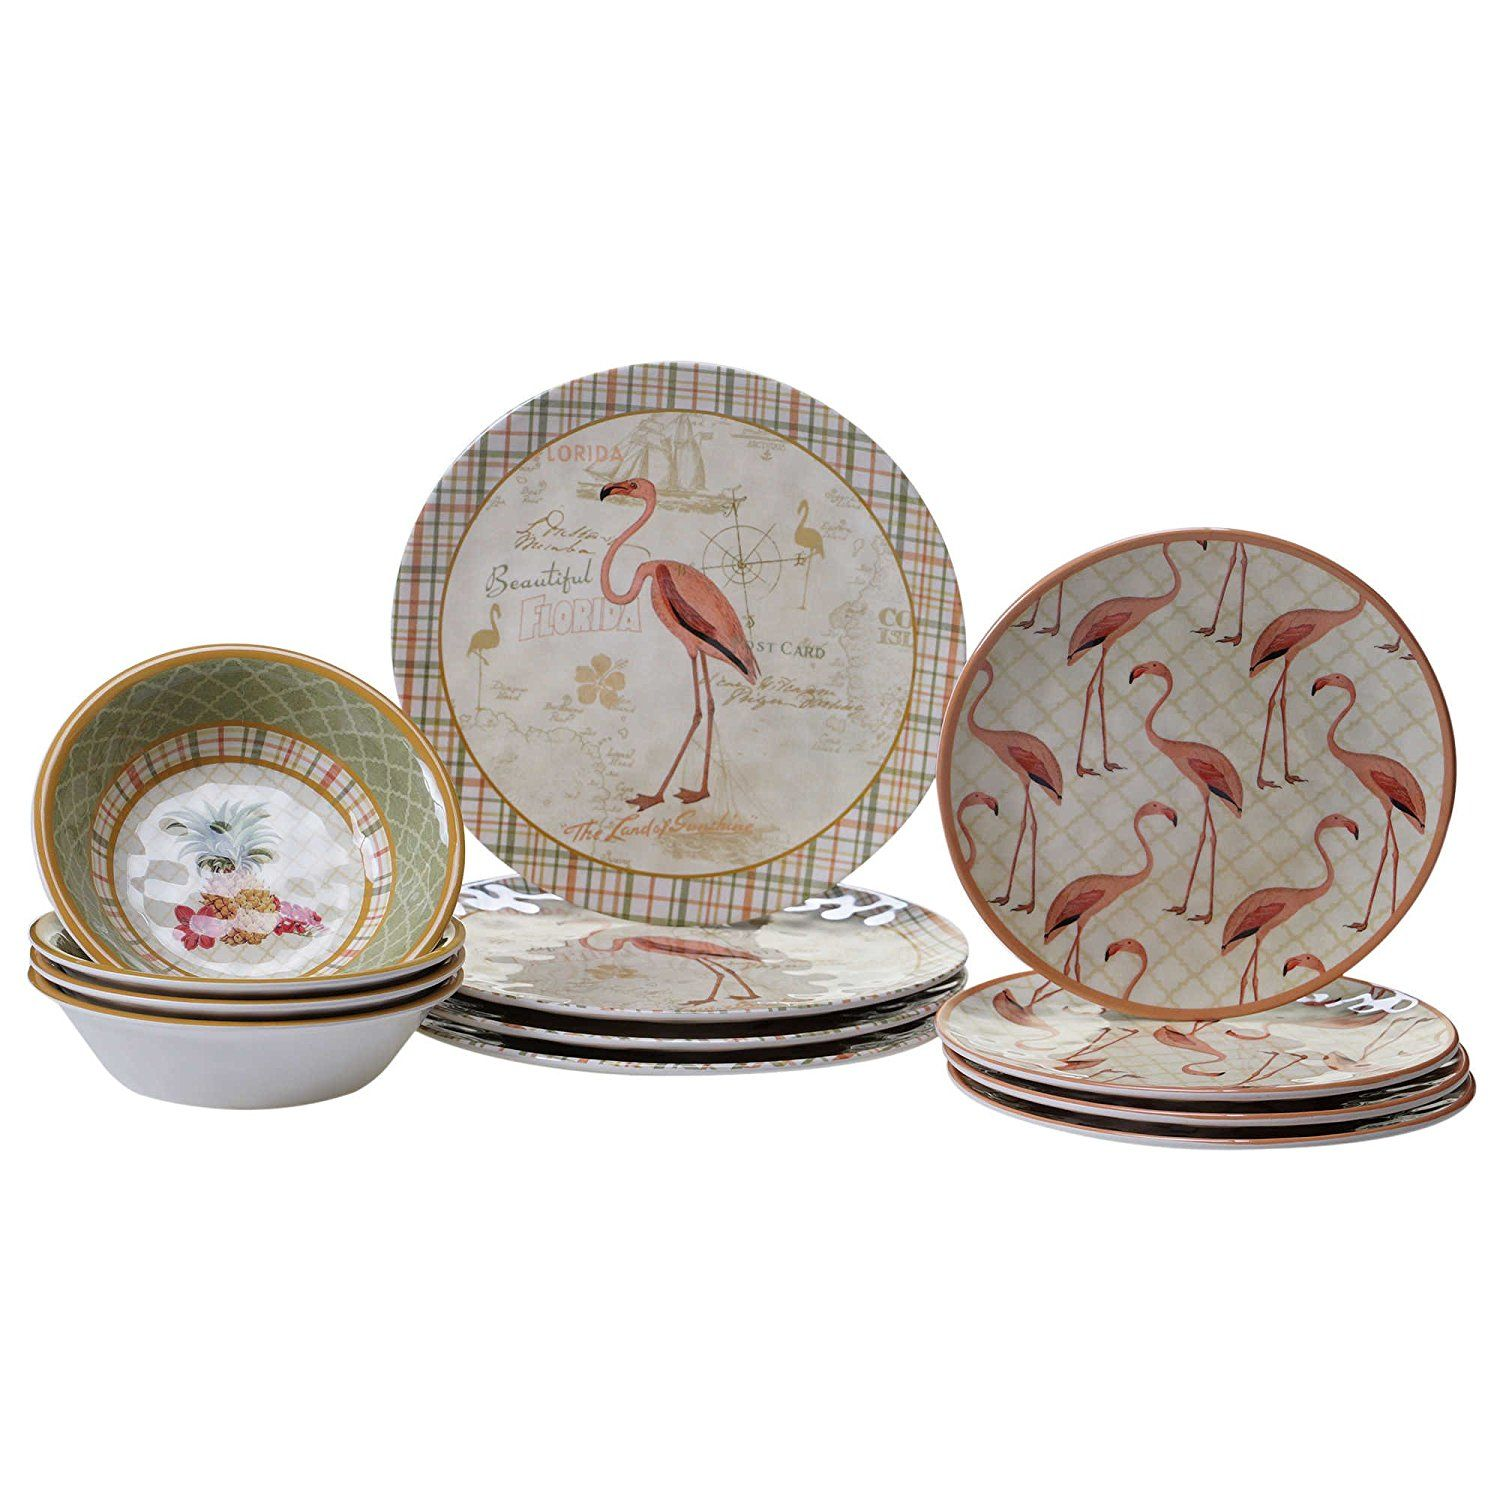 Celebrate any meal with this charming dinnerware set featuring a Floridian design with flamingos and tropical images. Made of melamine this dinnerware set ...  sc 1 st  Pinterest & Amazon.com | Floridian Design 12-piece Charming Dinnerware Set ...